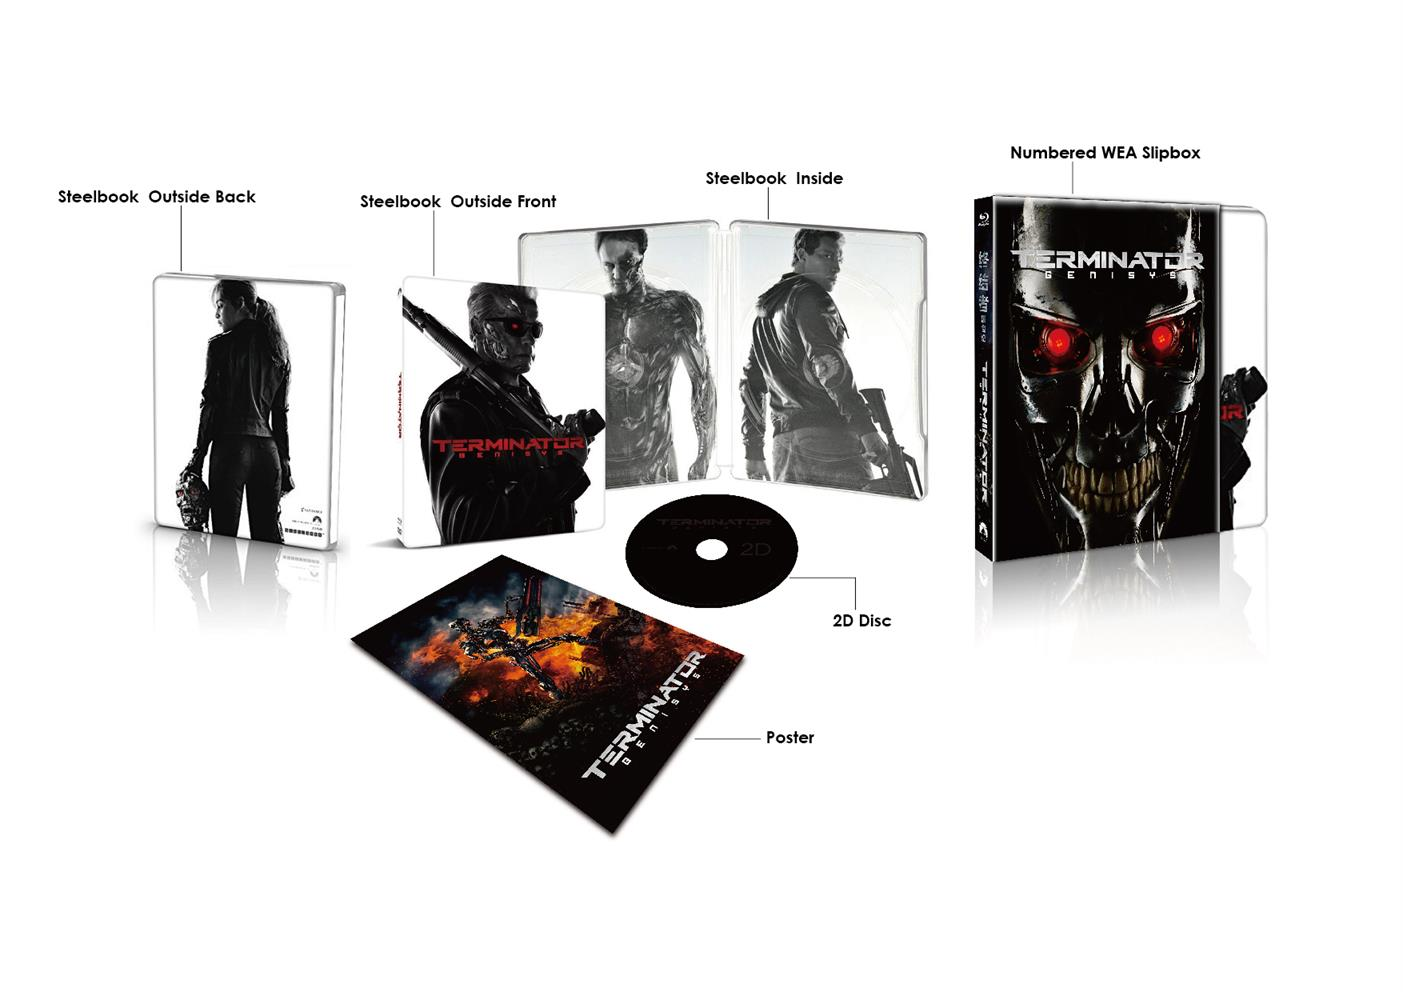 Terminator Genisys China Steelbook Edition